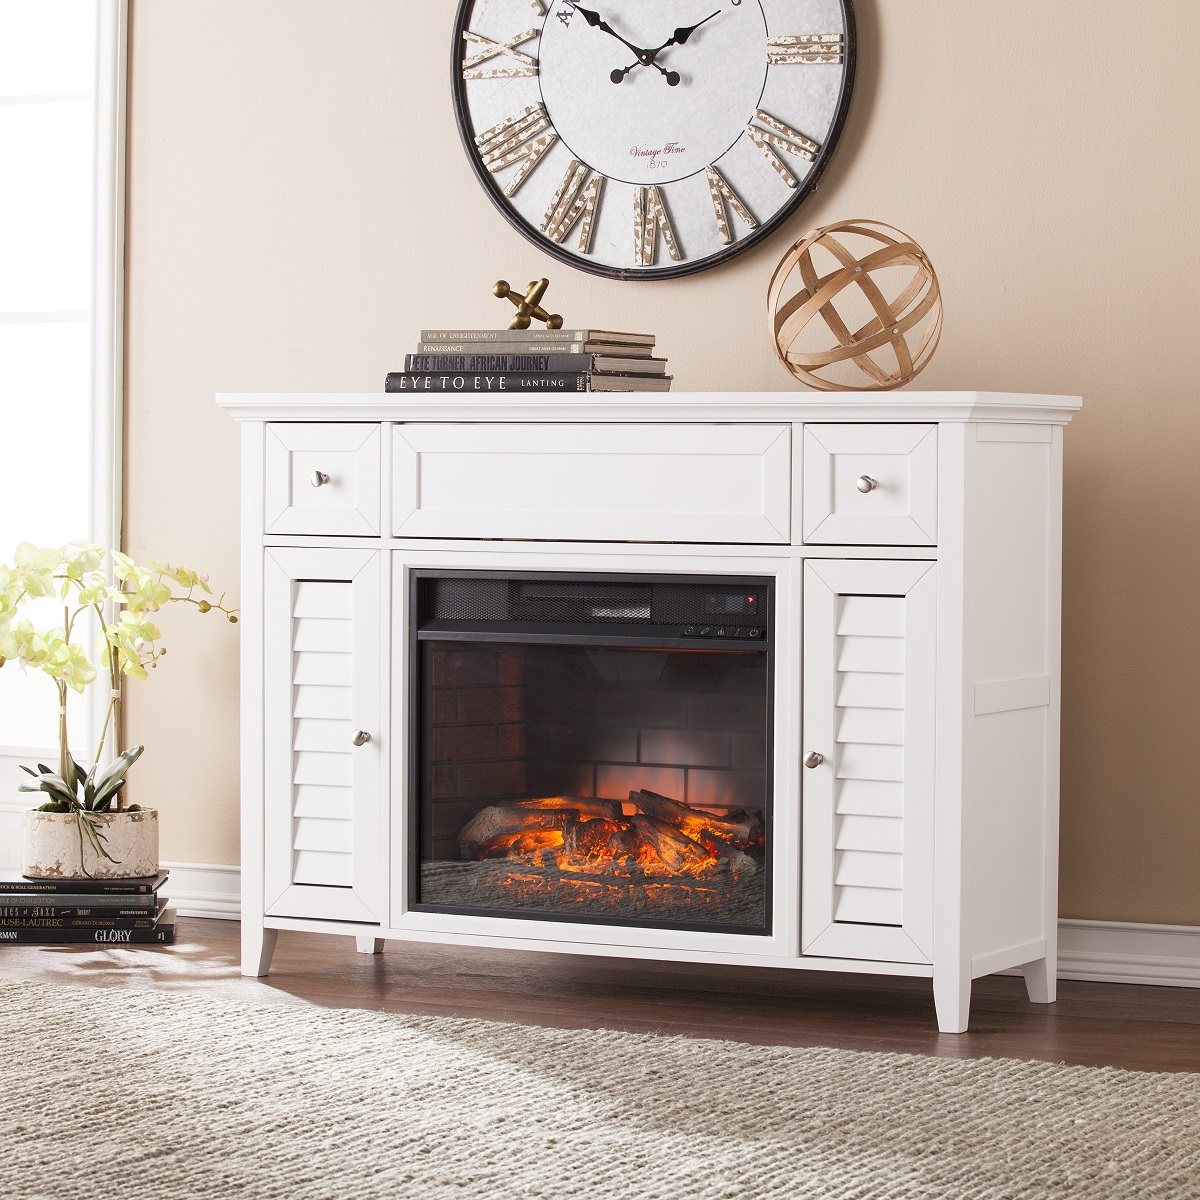 48 fairbury 3 in 1 infrared media fireplace console white. Black Bedroom Furniture Sets. Home Design Ideas